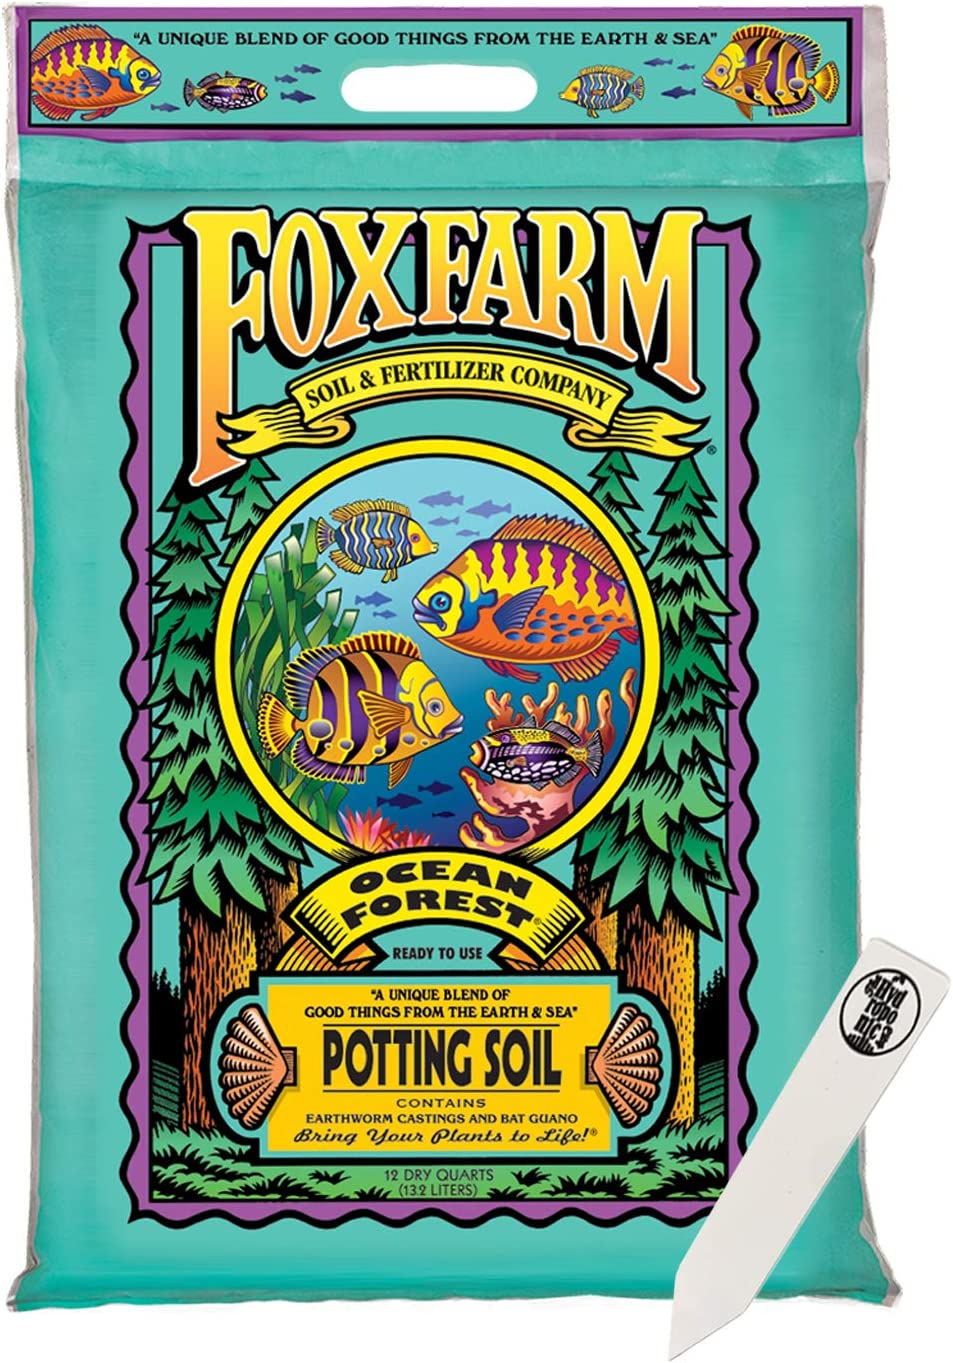 FoxFarm Ocean Forest Potting Soil Mix Indoor Outdoor for Garden and Plants | Plant Fertilizer | 12 Quart + THCity Stake (1 Pack)